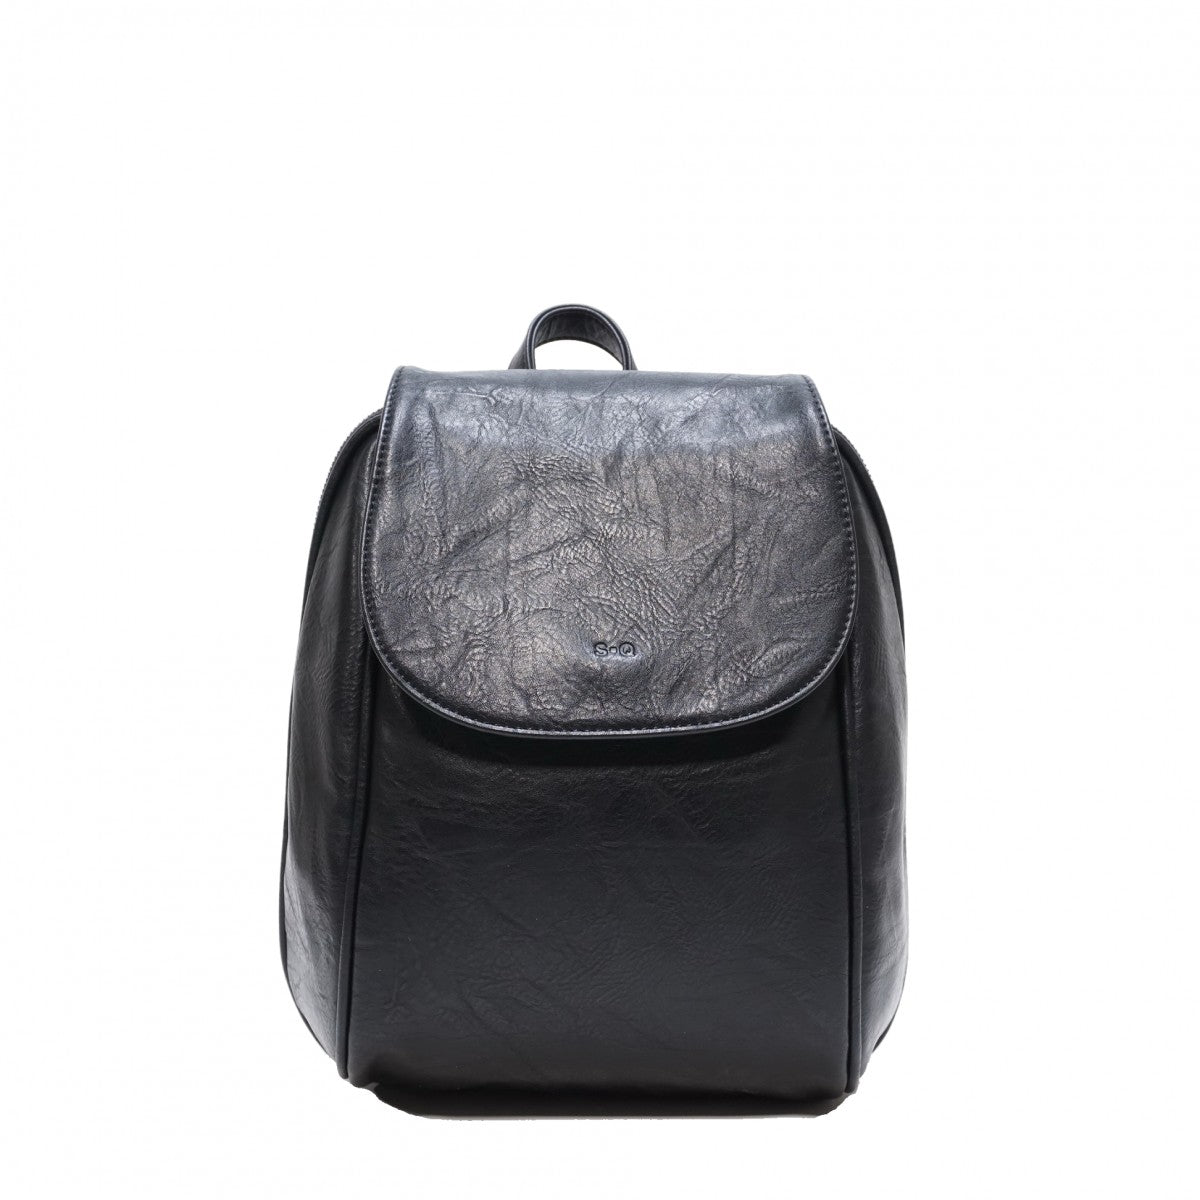 S-Q Jada Convertible Backpack - Black